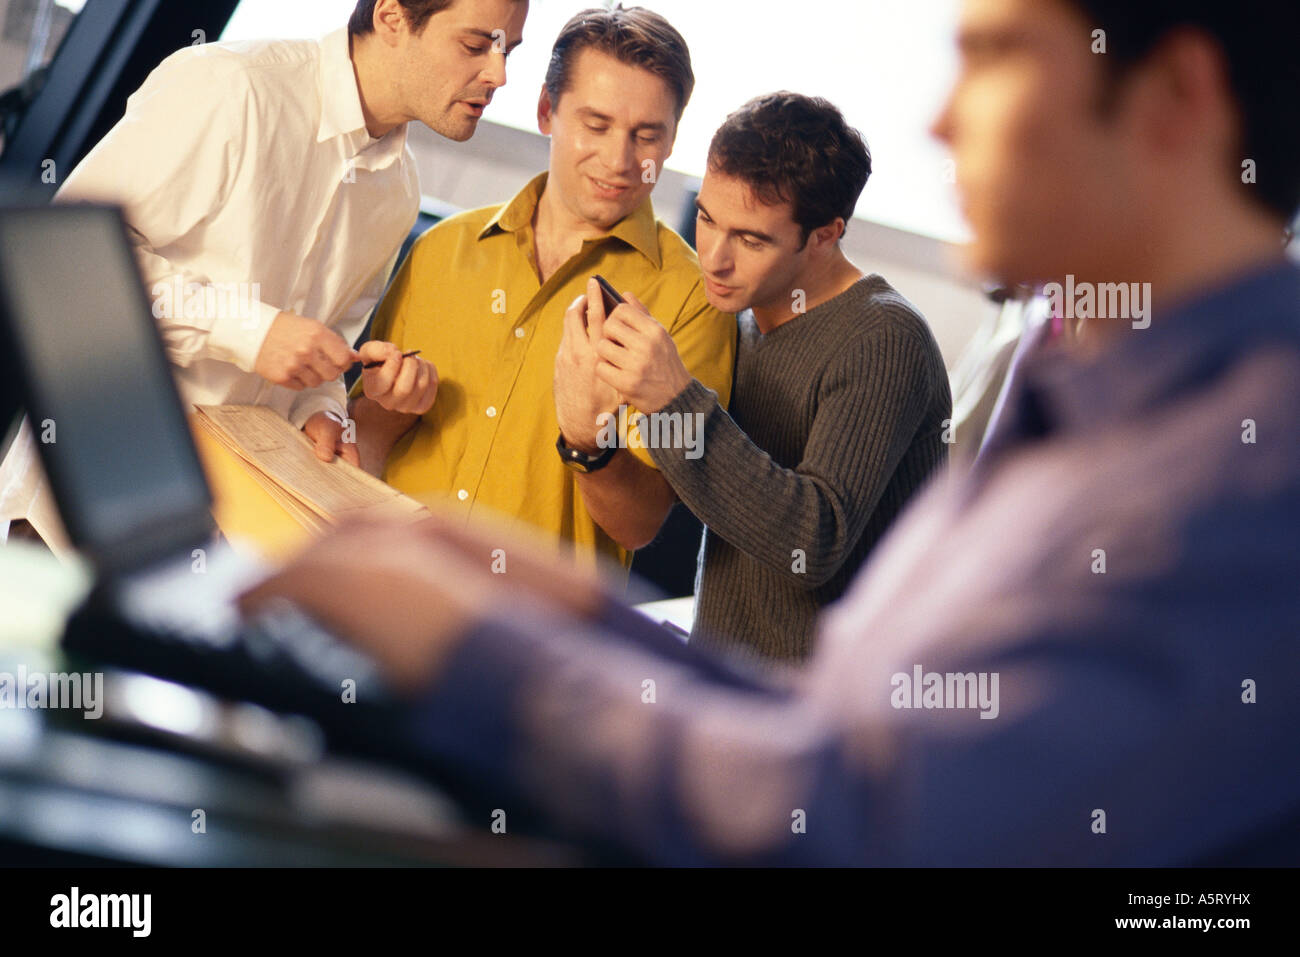 Three young men using electronic organizer, laptop user in foreground - Stock Image